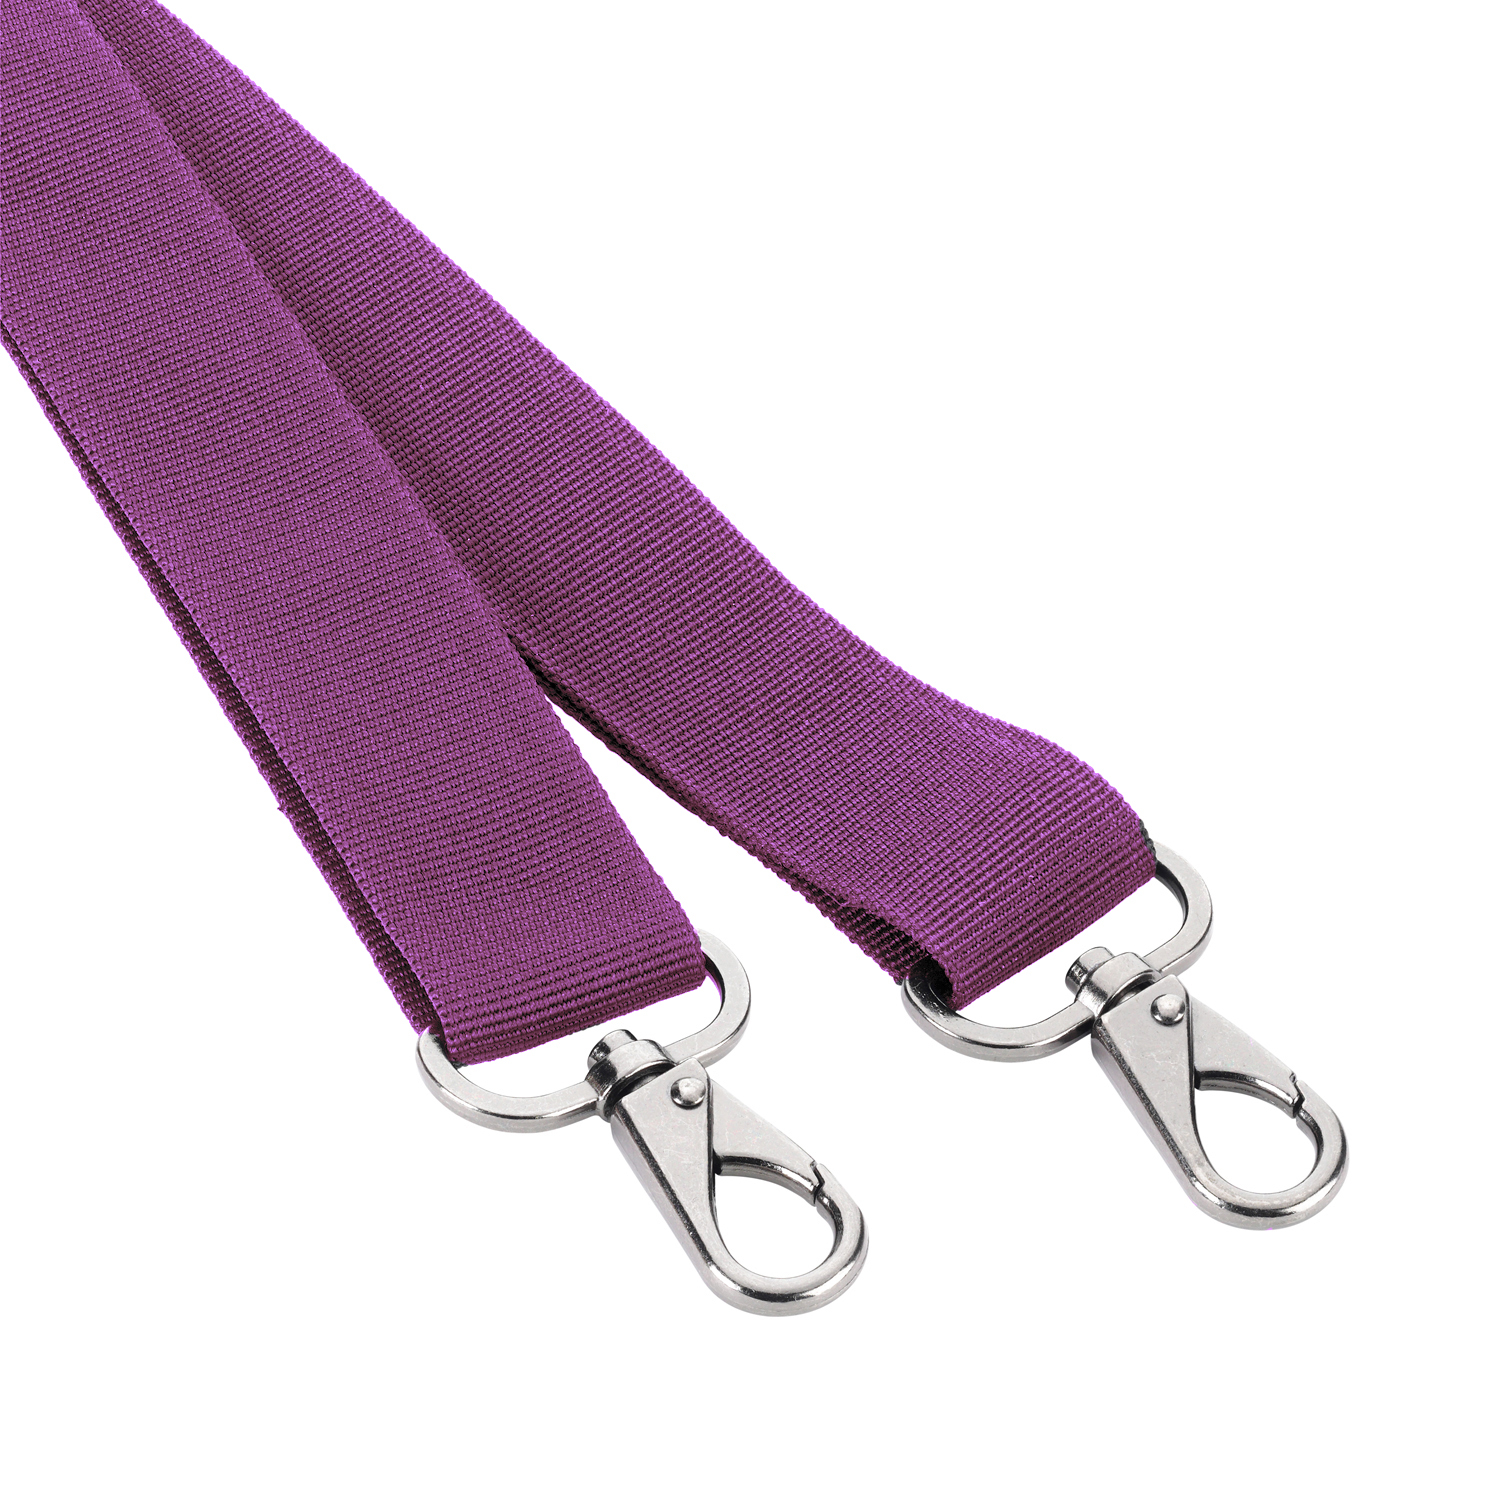 i-stay non slip bag strap purple